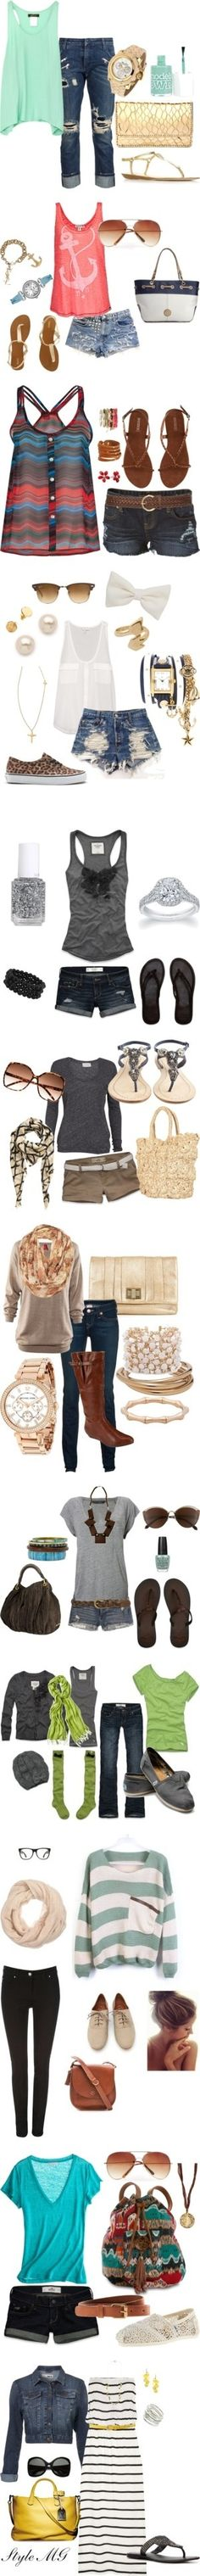 all these outfits.get in my closet now. Cute outfits for summer, great pieces for fall, spring, or winter too So many cute shoes especially sandals and flip flops Short shorts, tank tops Fashion Moda, Cute Fashion, Look Fashion, Womens Fashion, Fashion Styles, High Fashion, Fashion Teens, Fashion 2014, Luxury Fashion